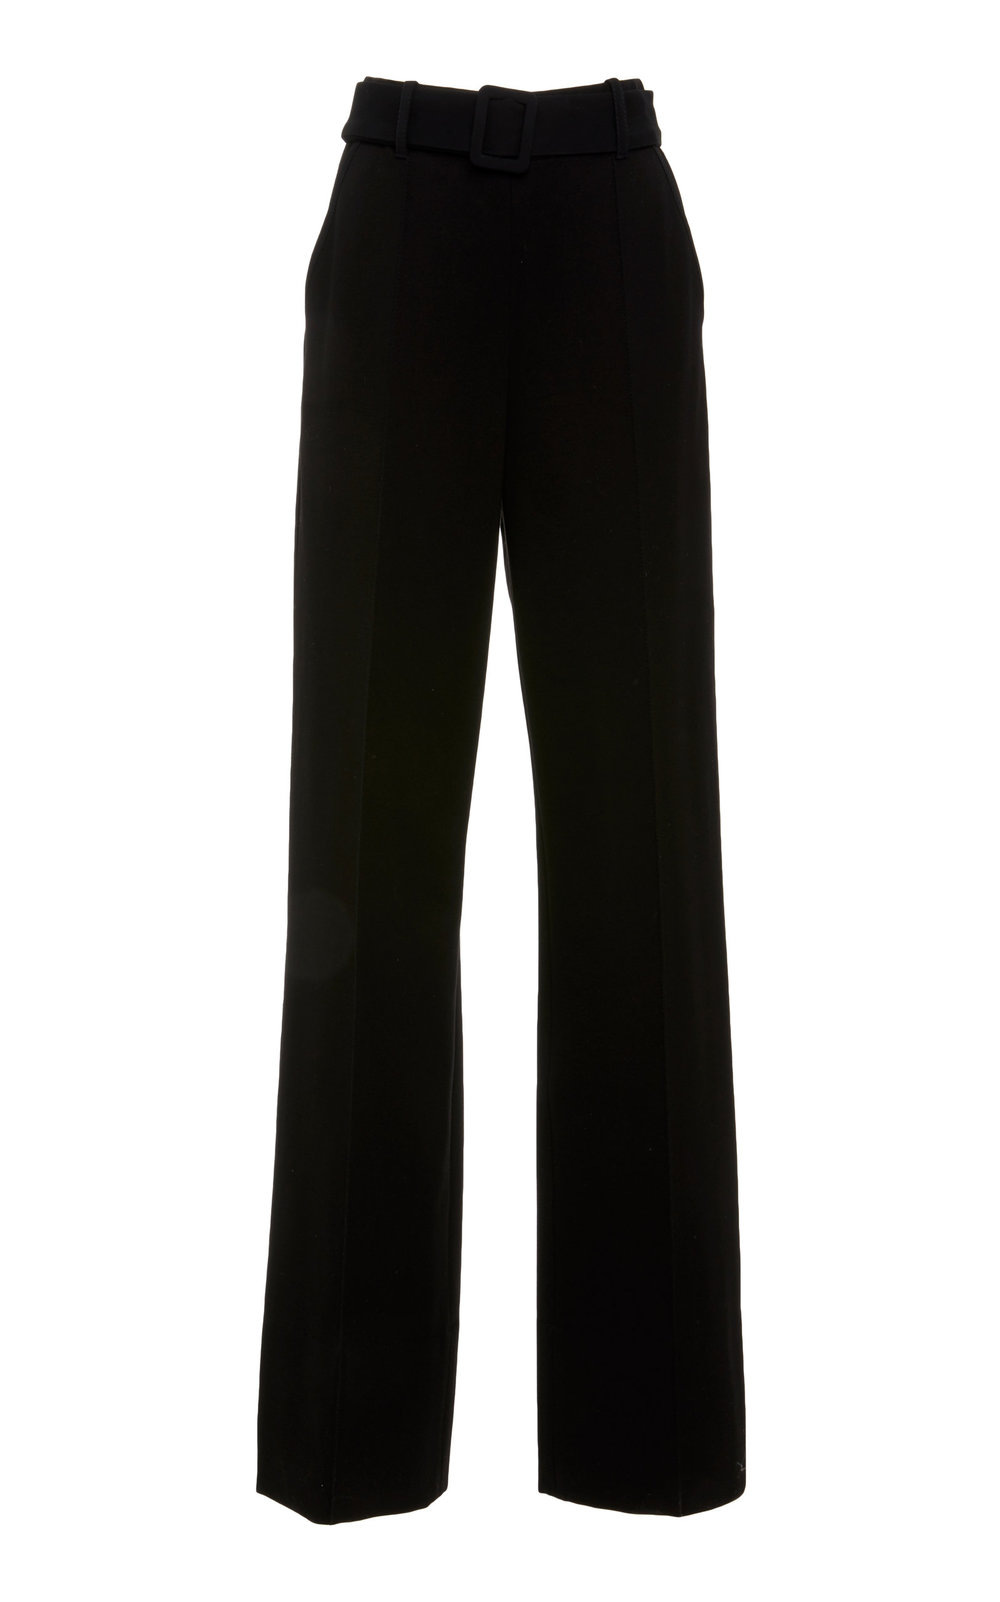 Matthiola Jersey Pants - BLACK  Sharply cut in a wide leg silhouette, these classic pants feature a high waistline and fly closure. The belted design features a central front cut, providing a contemporary tailored feel. Wear yours with a jacket or as a sharp separate.